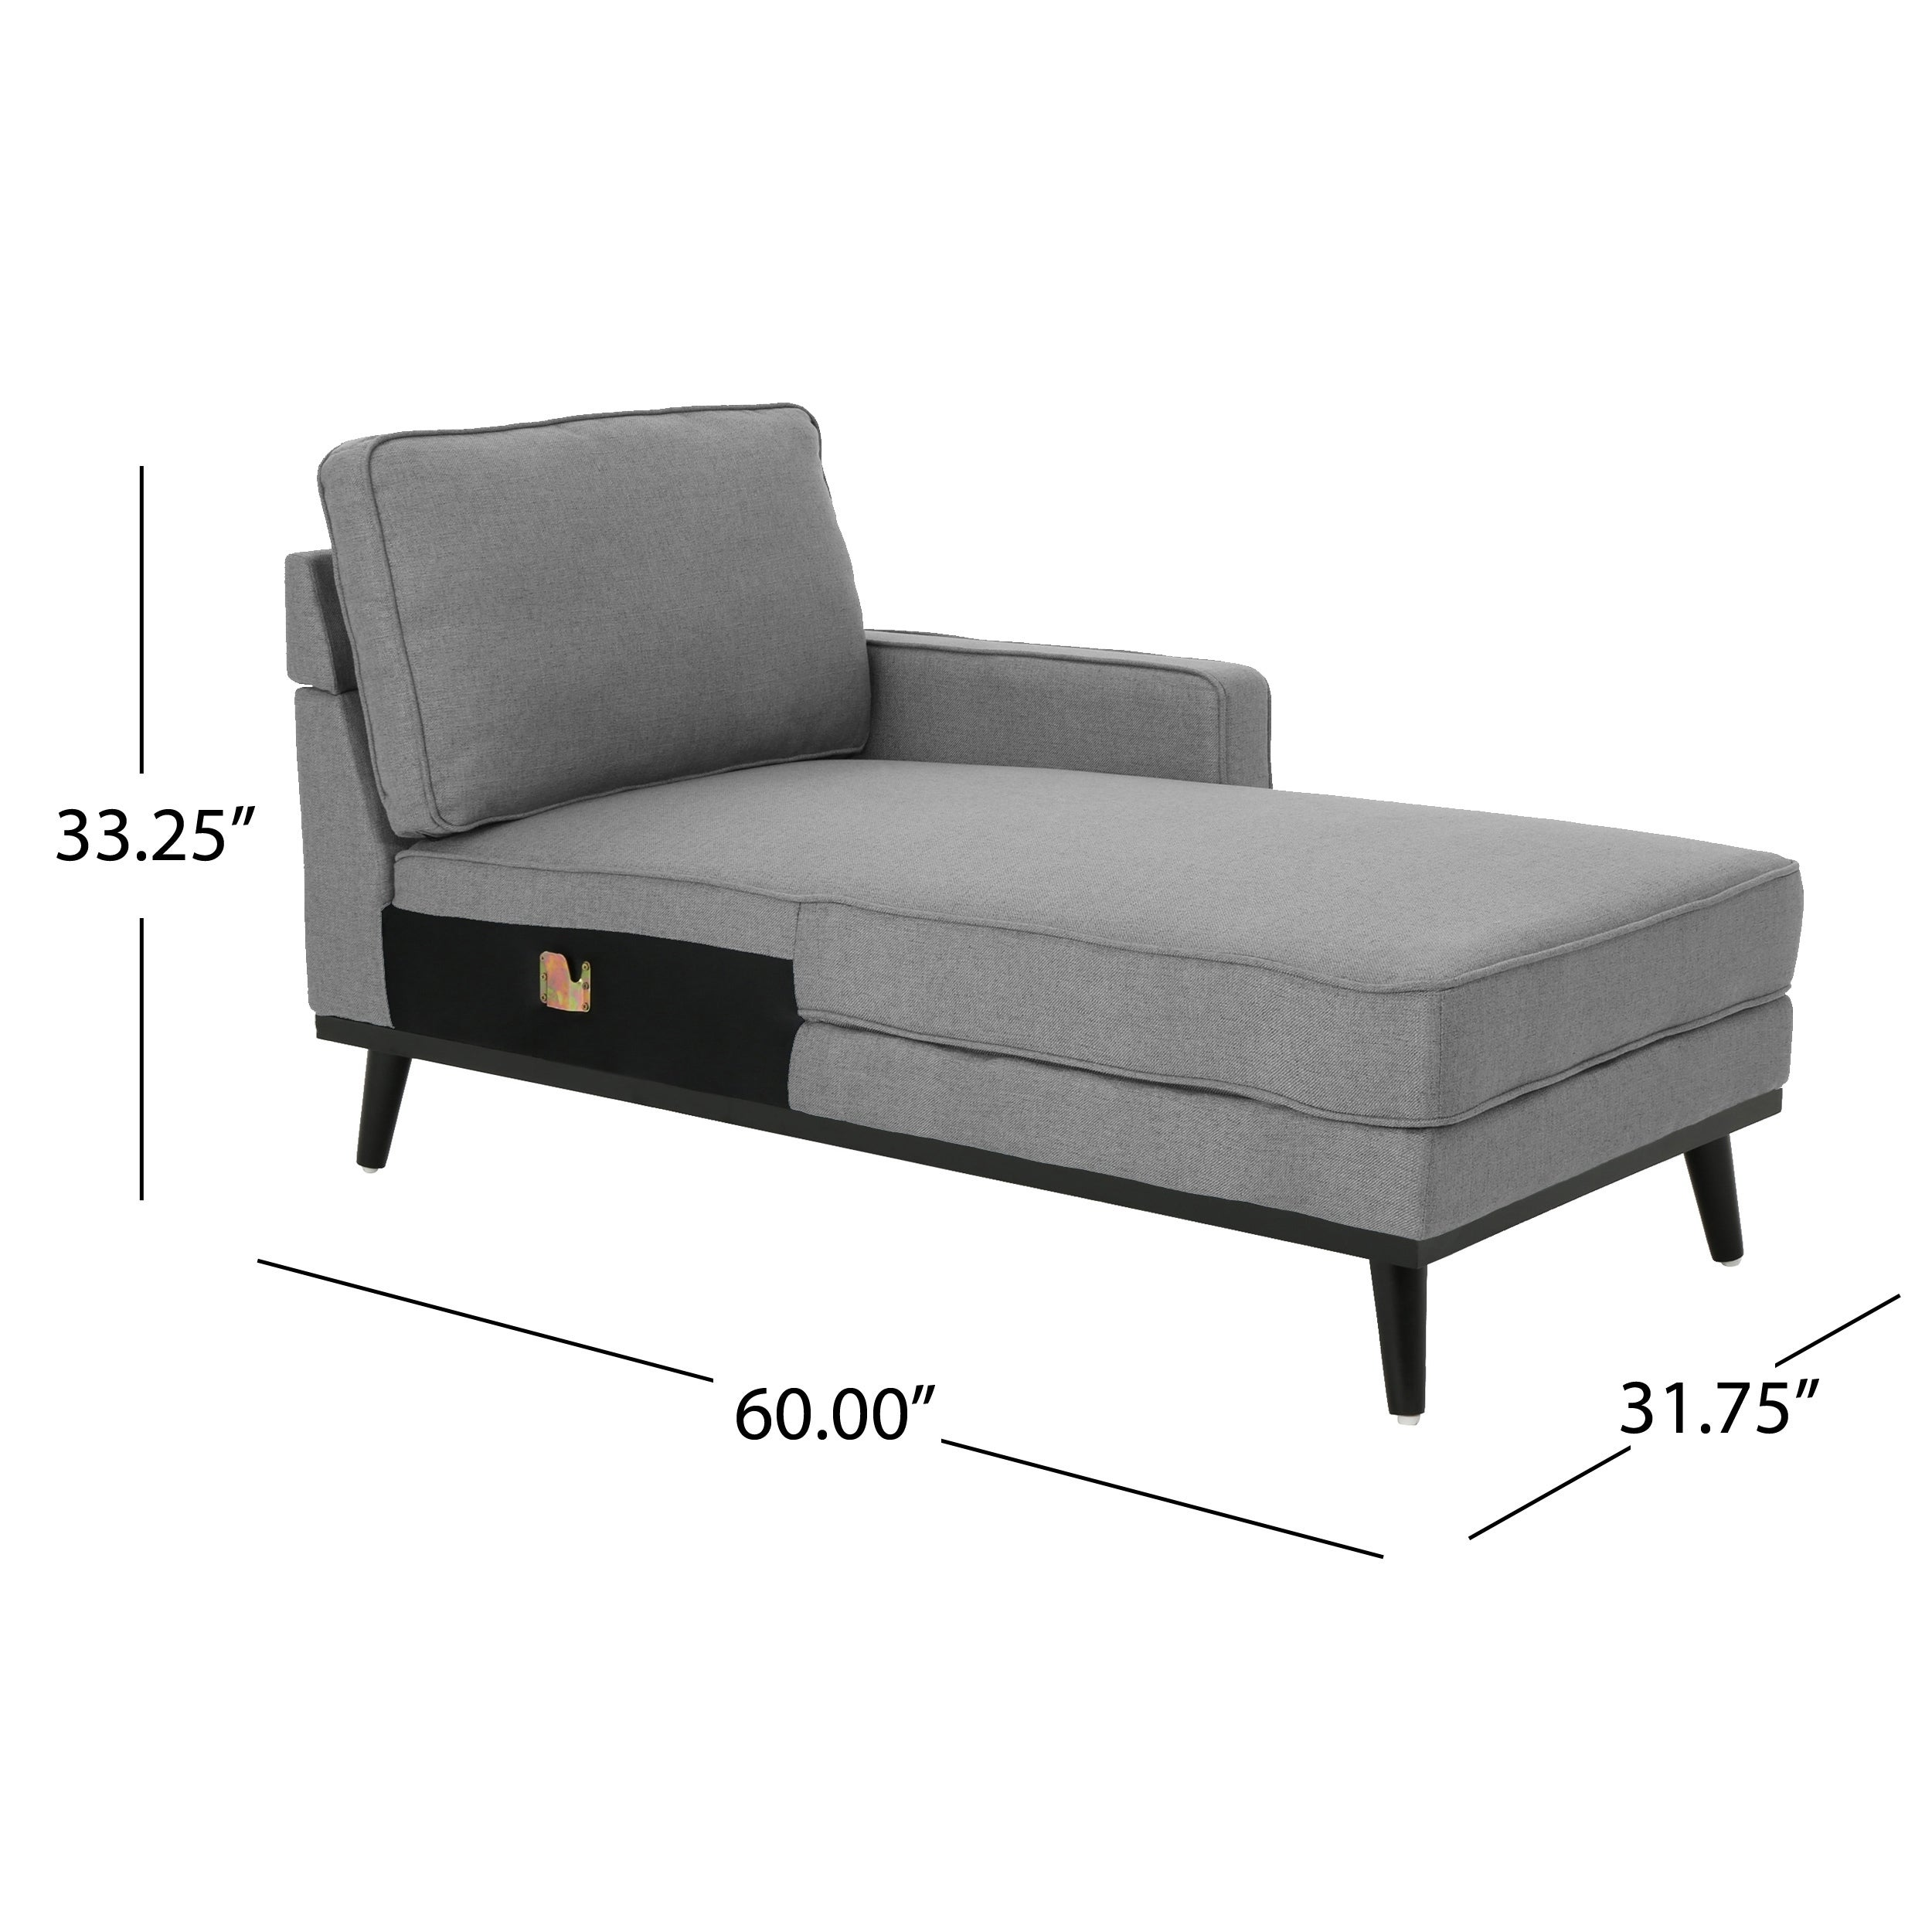 Matilda Mid Century Fabric Chaise Sectional Sofa By Christopher Knight Home Free Shipping Today 22057532